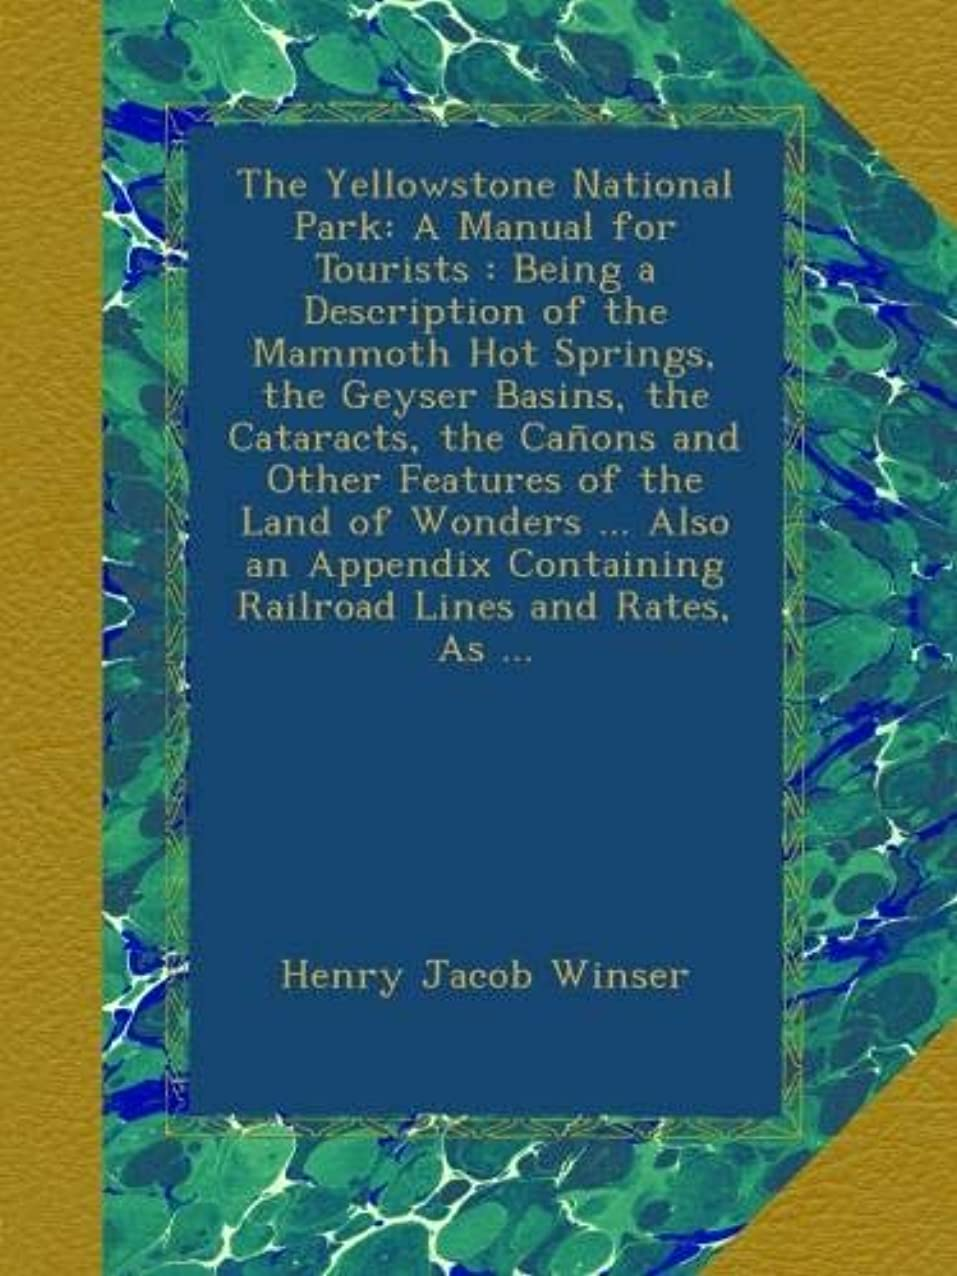 聡明バラ色性差別The Yellowstone National Park: A Manual for Tourists : Being a Description of the Mammoth Hot Springs, the Geyser Basins, the Cataracts, the Ca?ons and Other Features of the Land of Wonders ... Also an Appendix Containing Railroad Lines and Rates, As ...